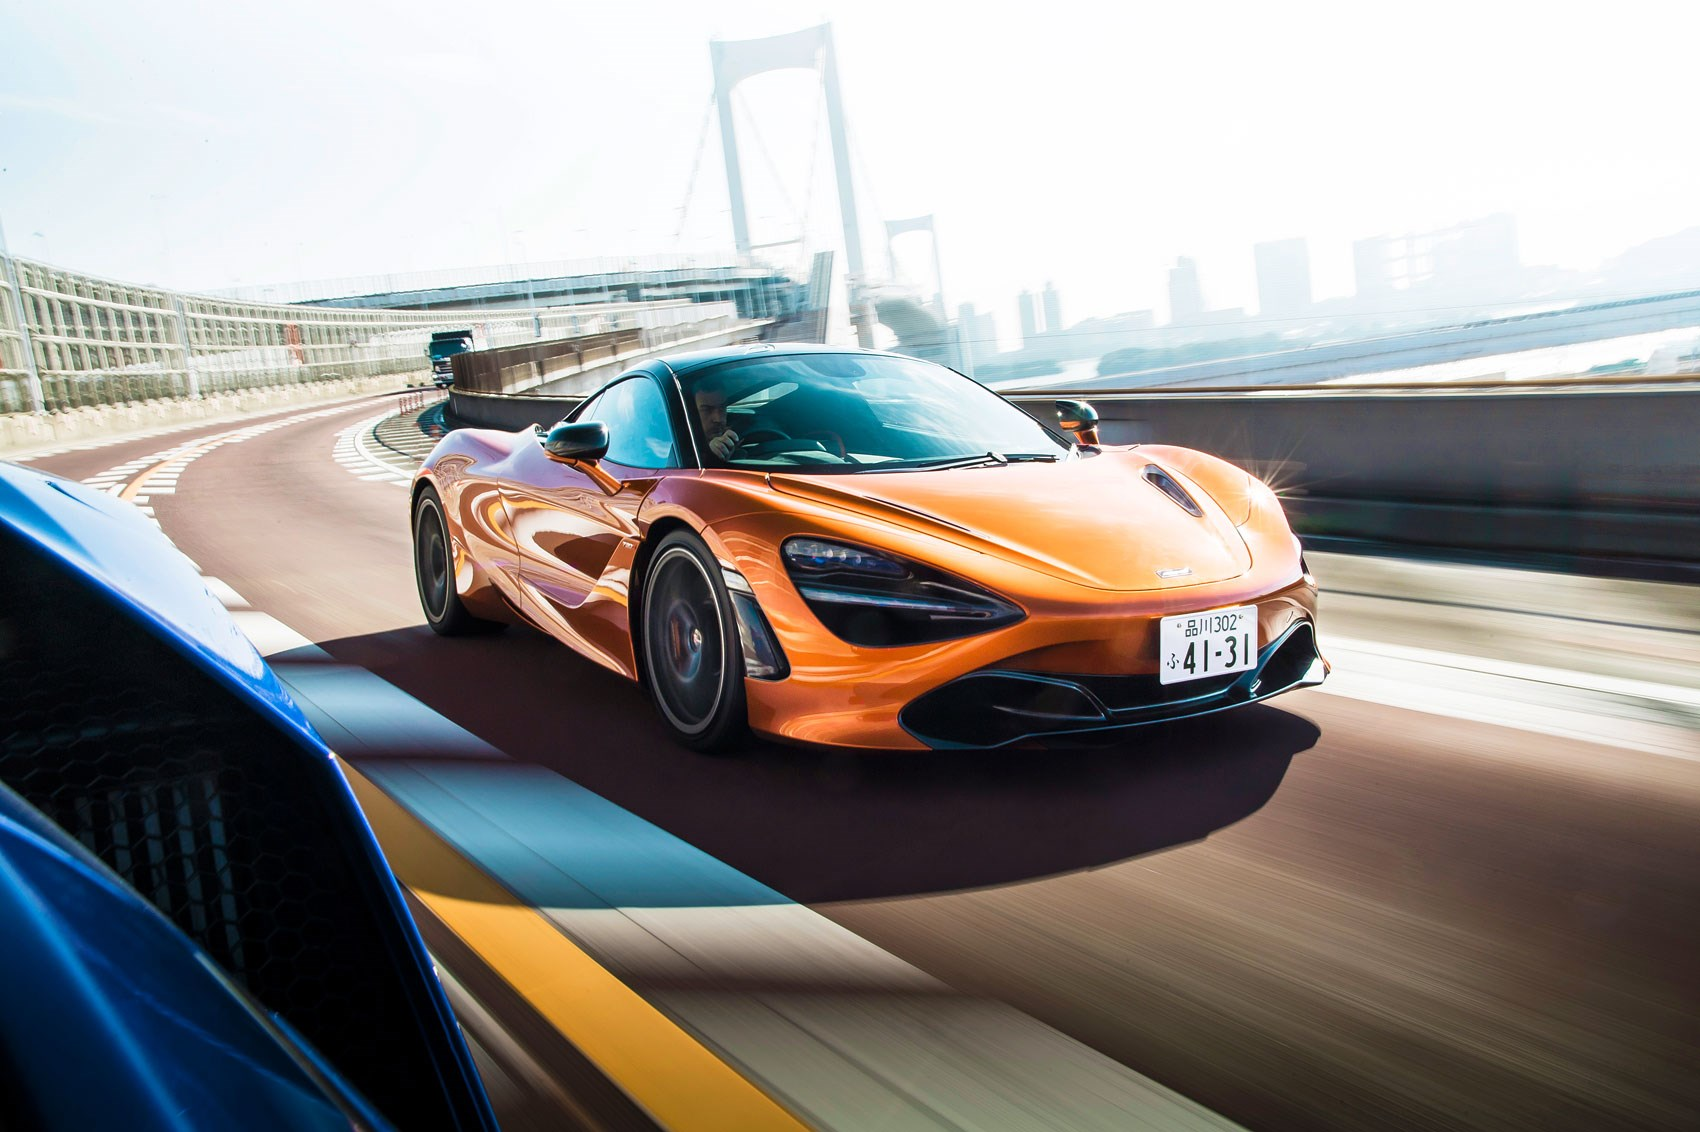 Mclaren 720s Vs Honda Nsx Twin Test Review In Japan Car